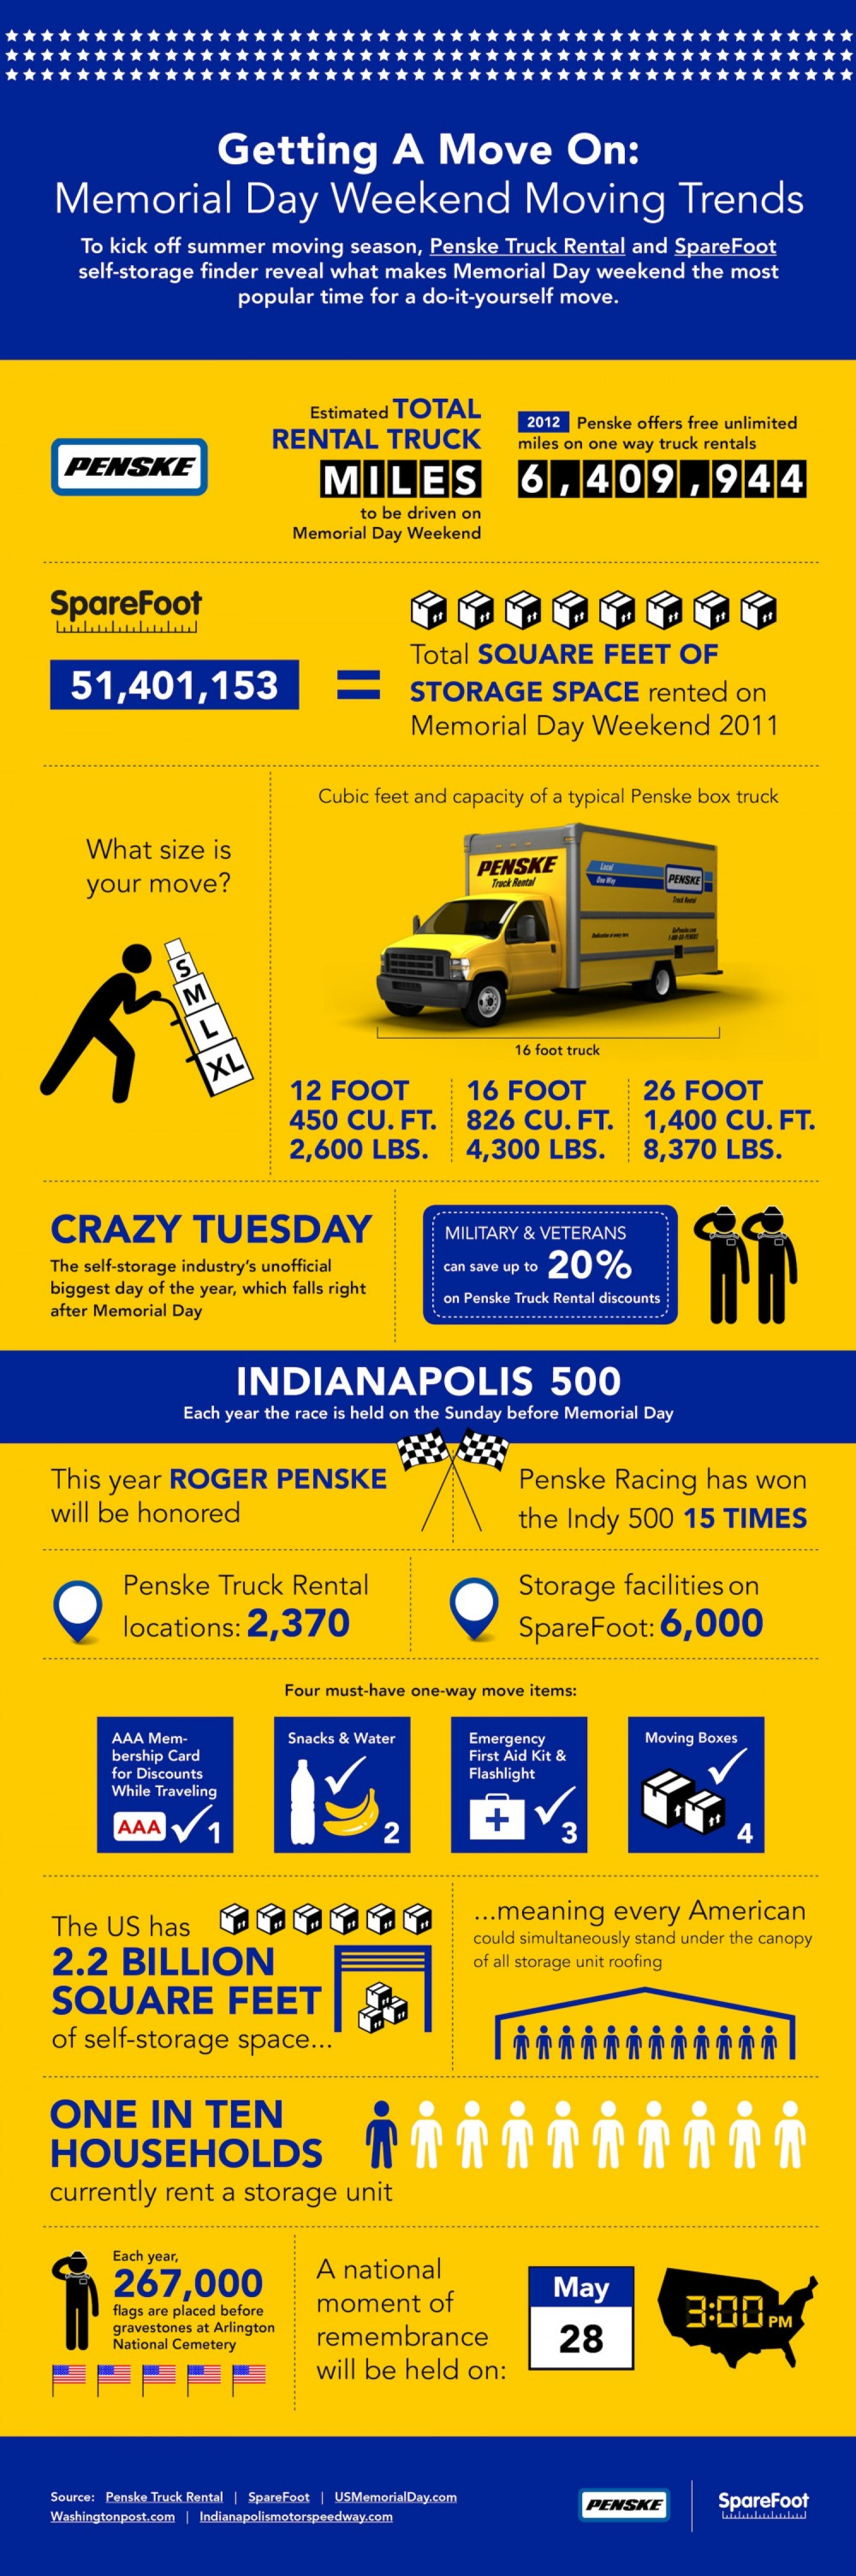 Getting A Move On: Memorial Day Moving Trends Infographic